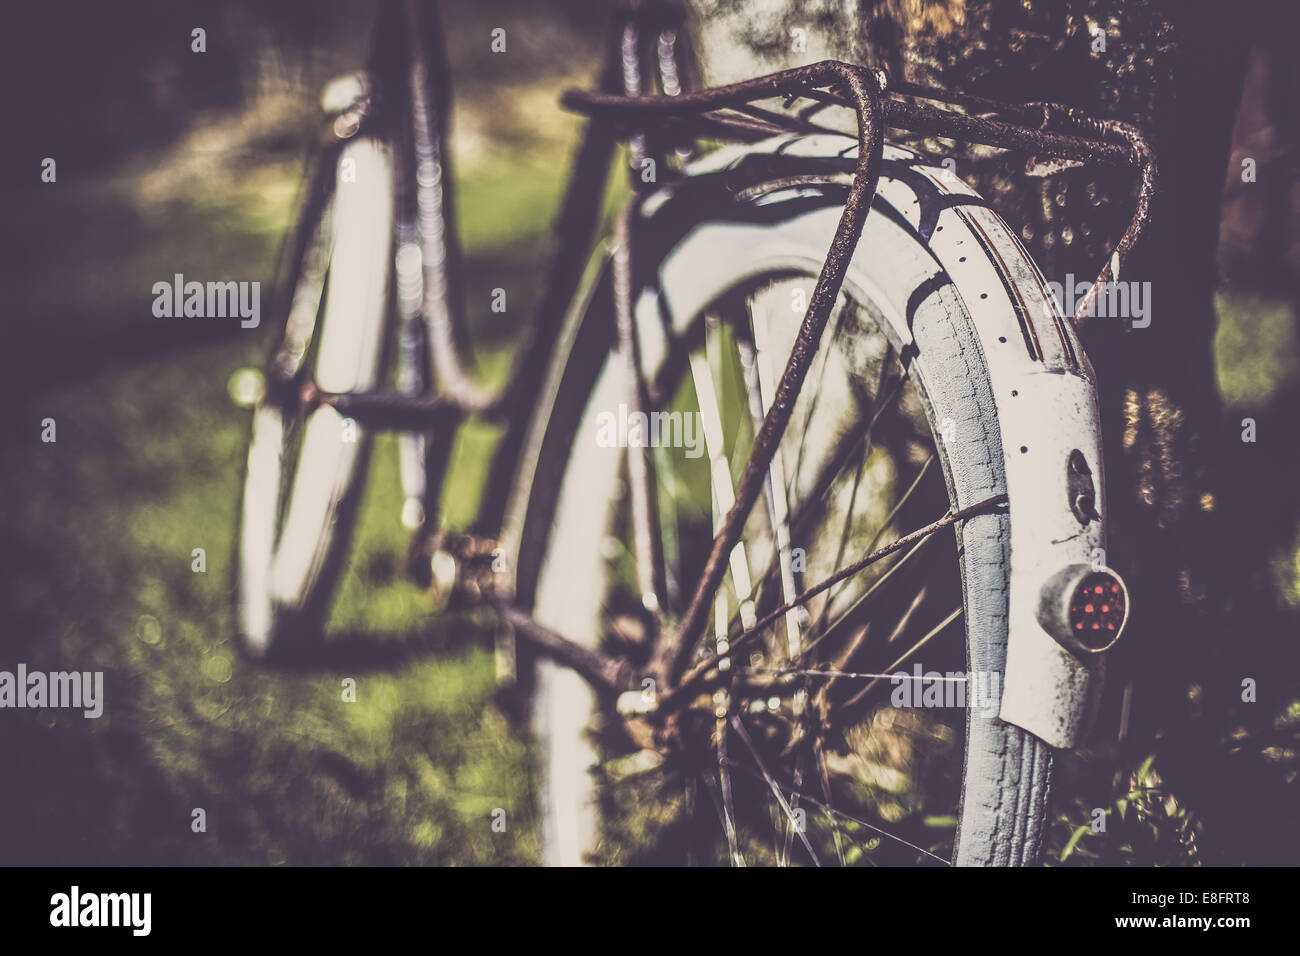 Norway, Close-up of old bicycle - Stock Image